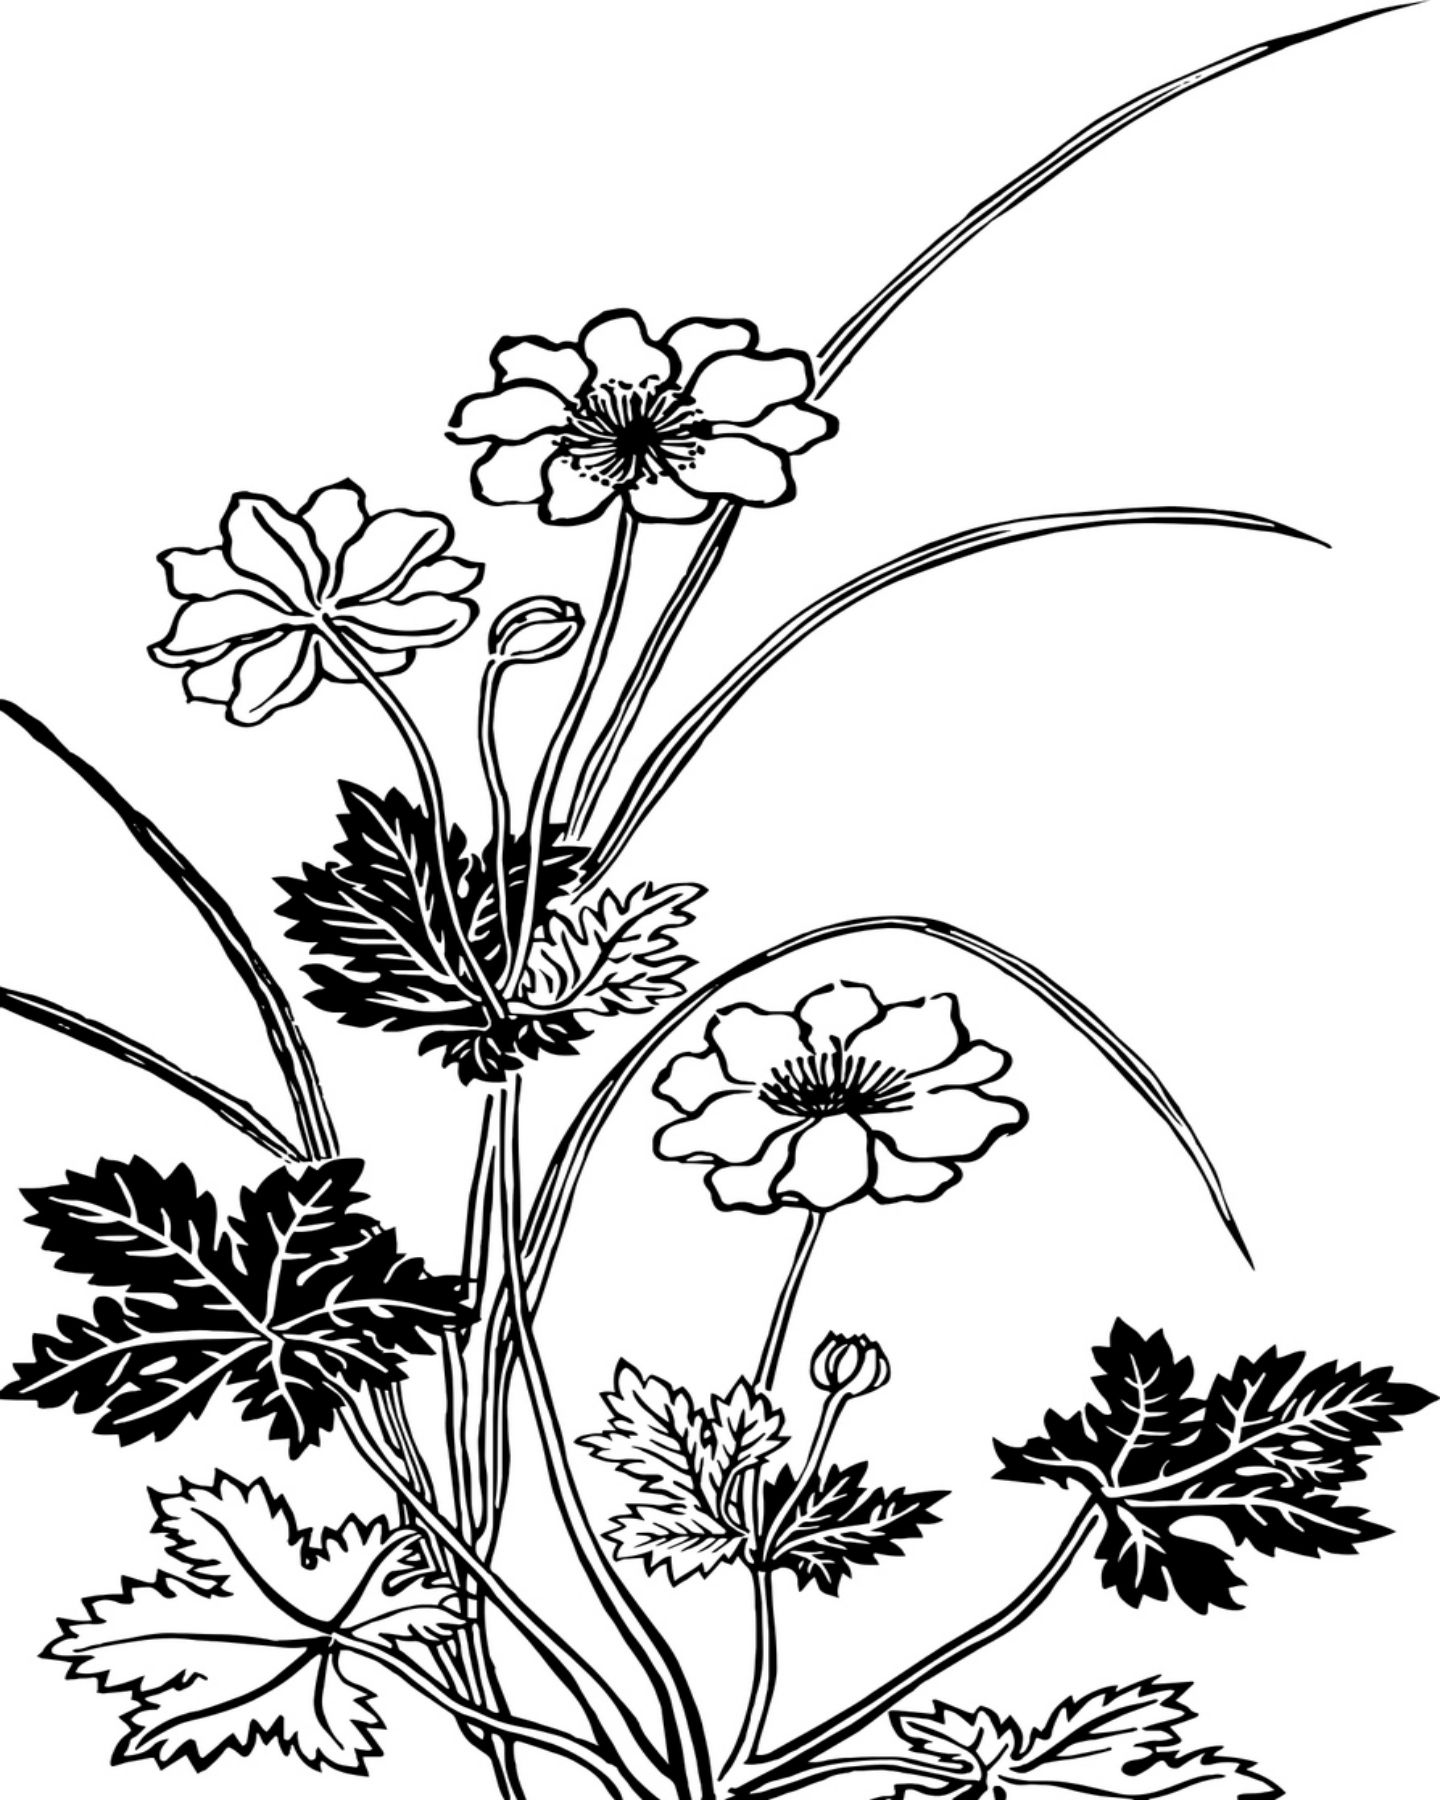 Vintage Flowers Coloring Page White Flower Png Black And White Flowers Digital Flowers